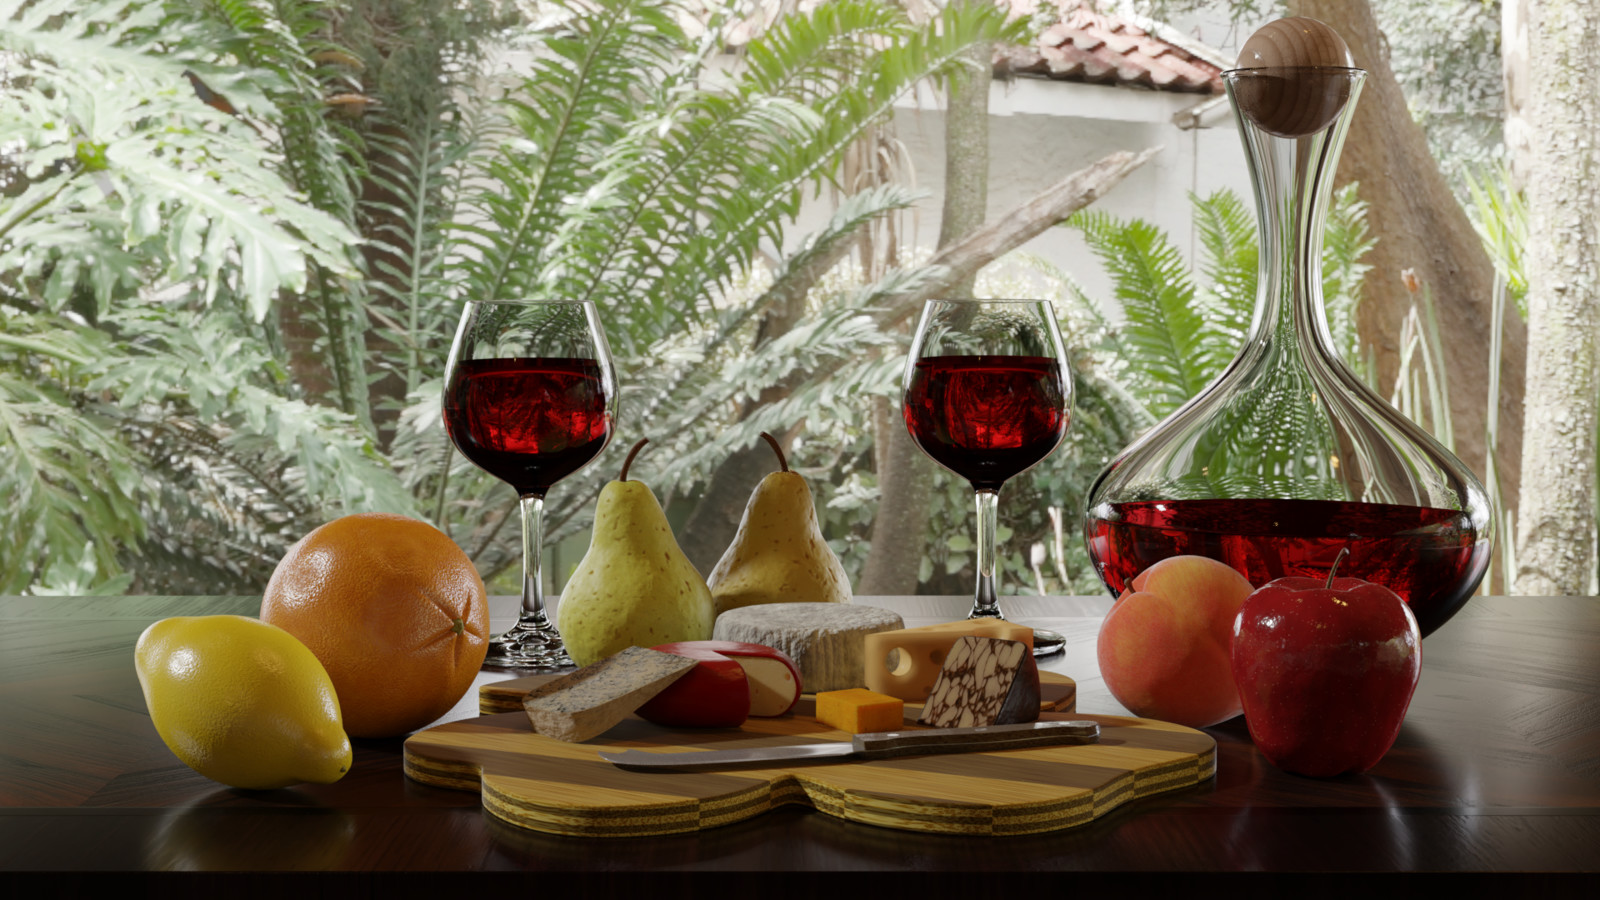 Still life fruit, cheese, and wine scene. Modeled in Blender with HDRI lighting.